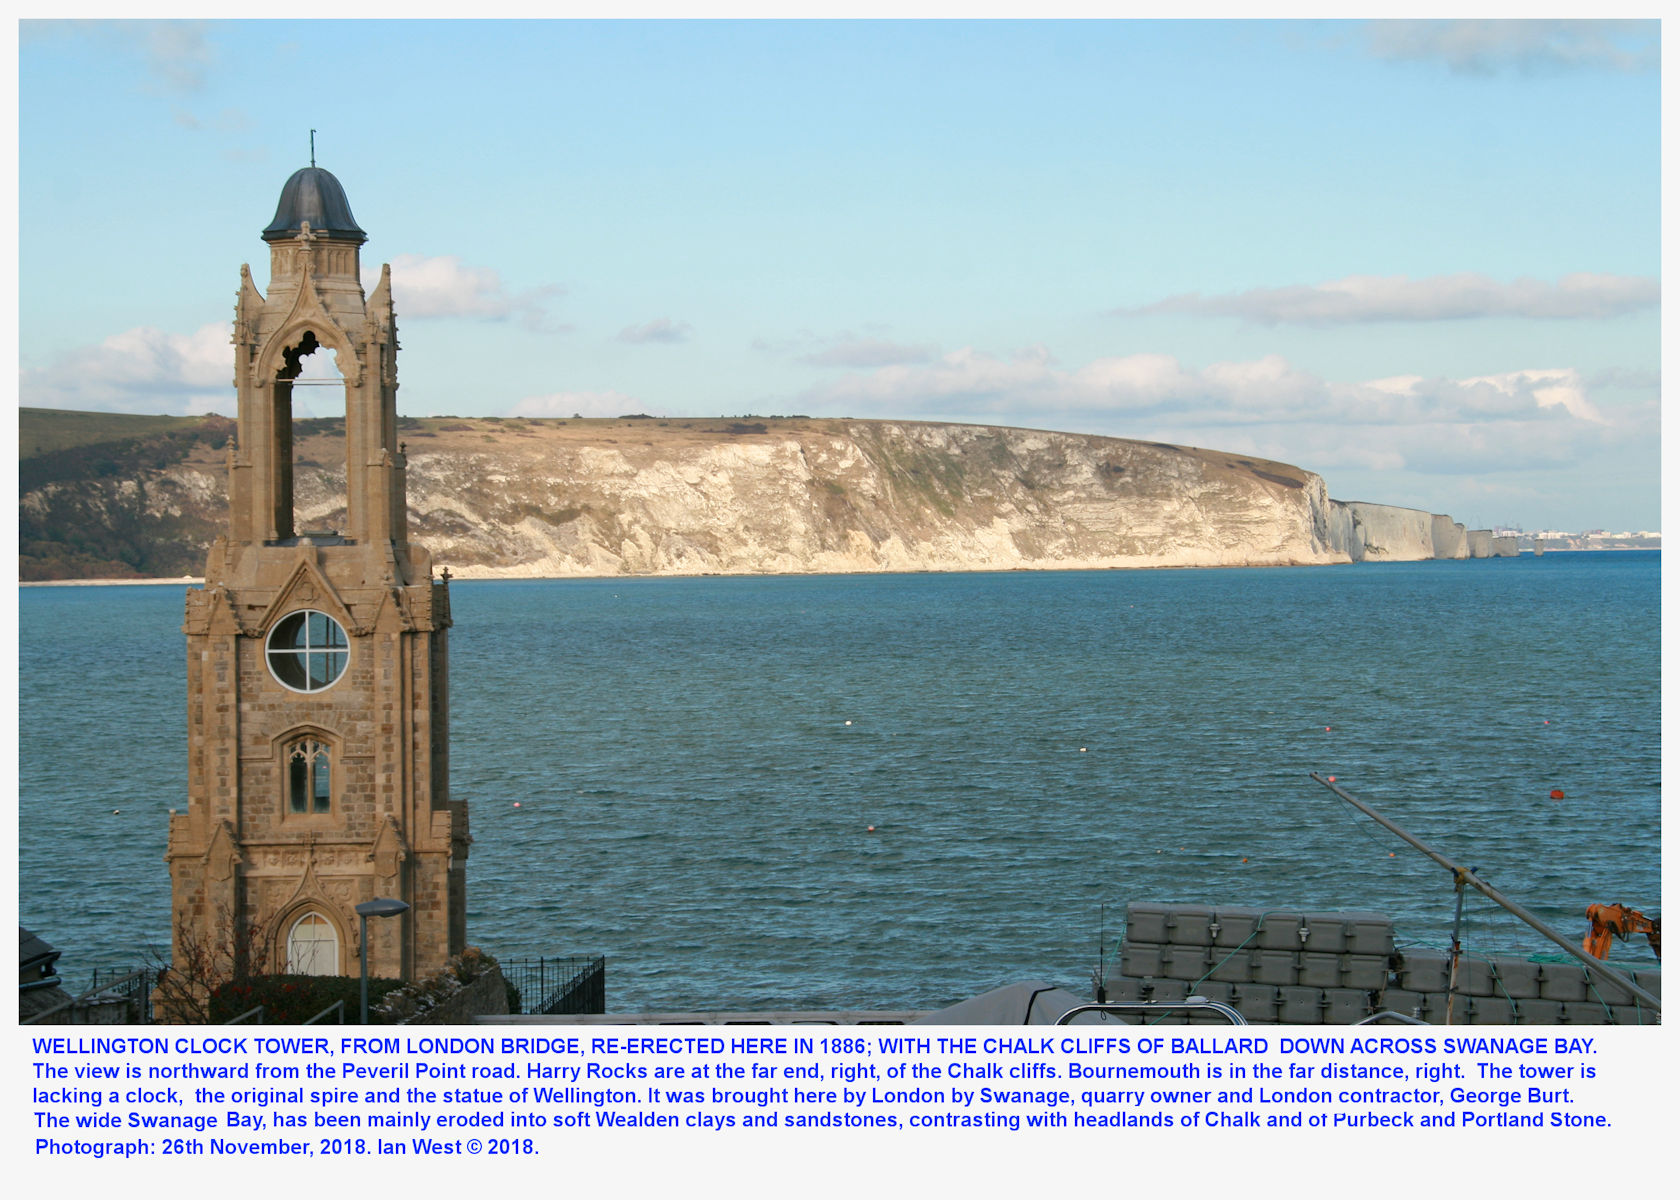 the Wellington Clock-Tower from the old London Bridge, and now situated on the north side of the Peveril Point promontory, photograph, 26th November 2018